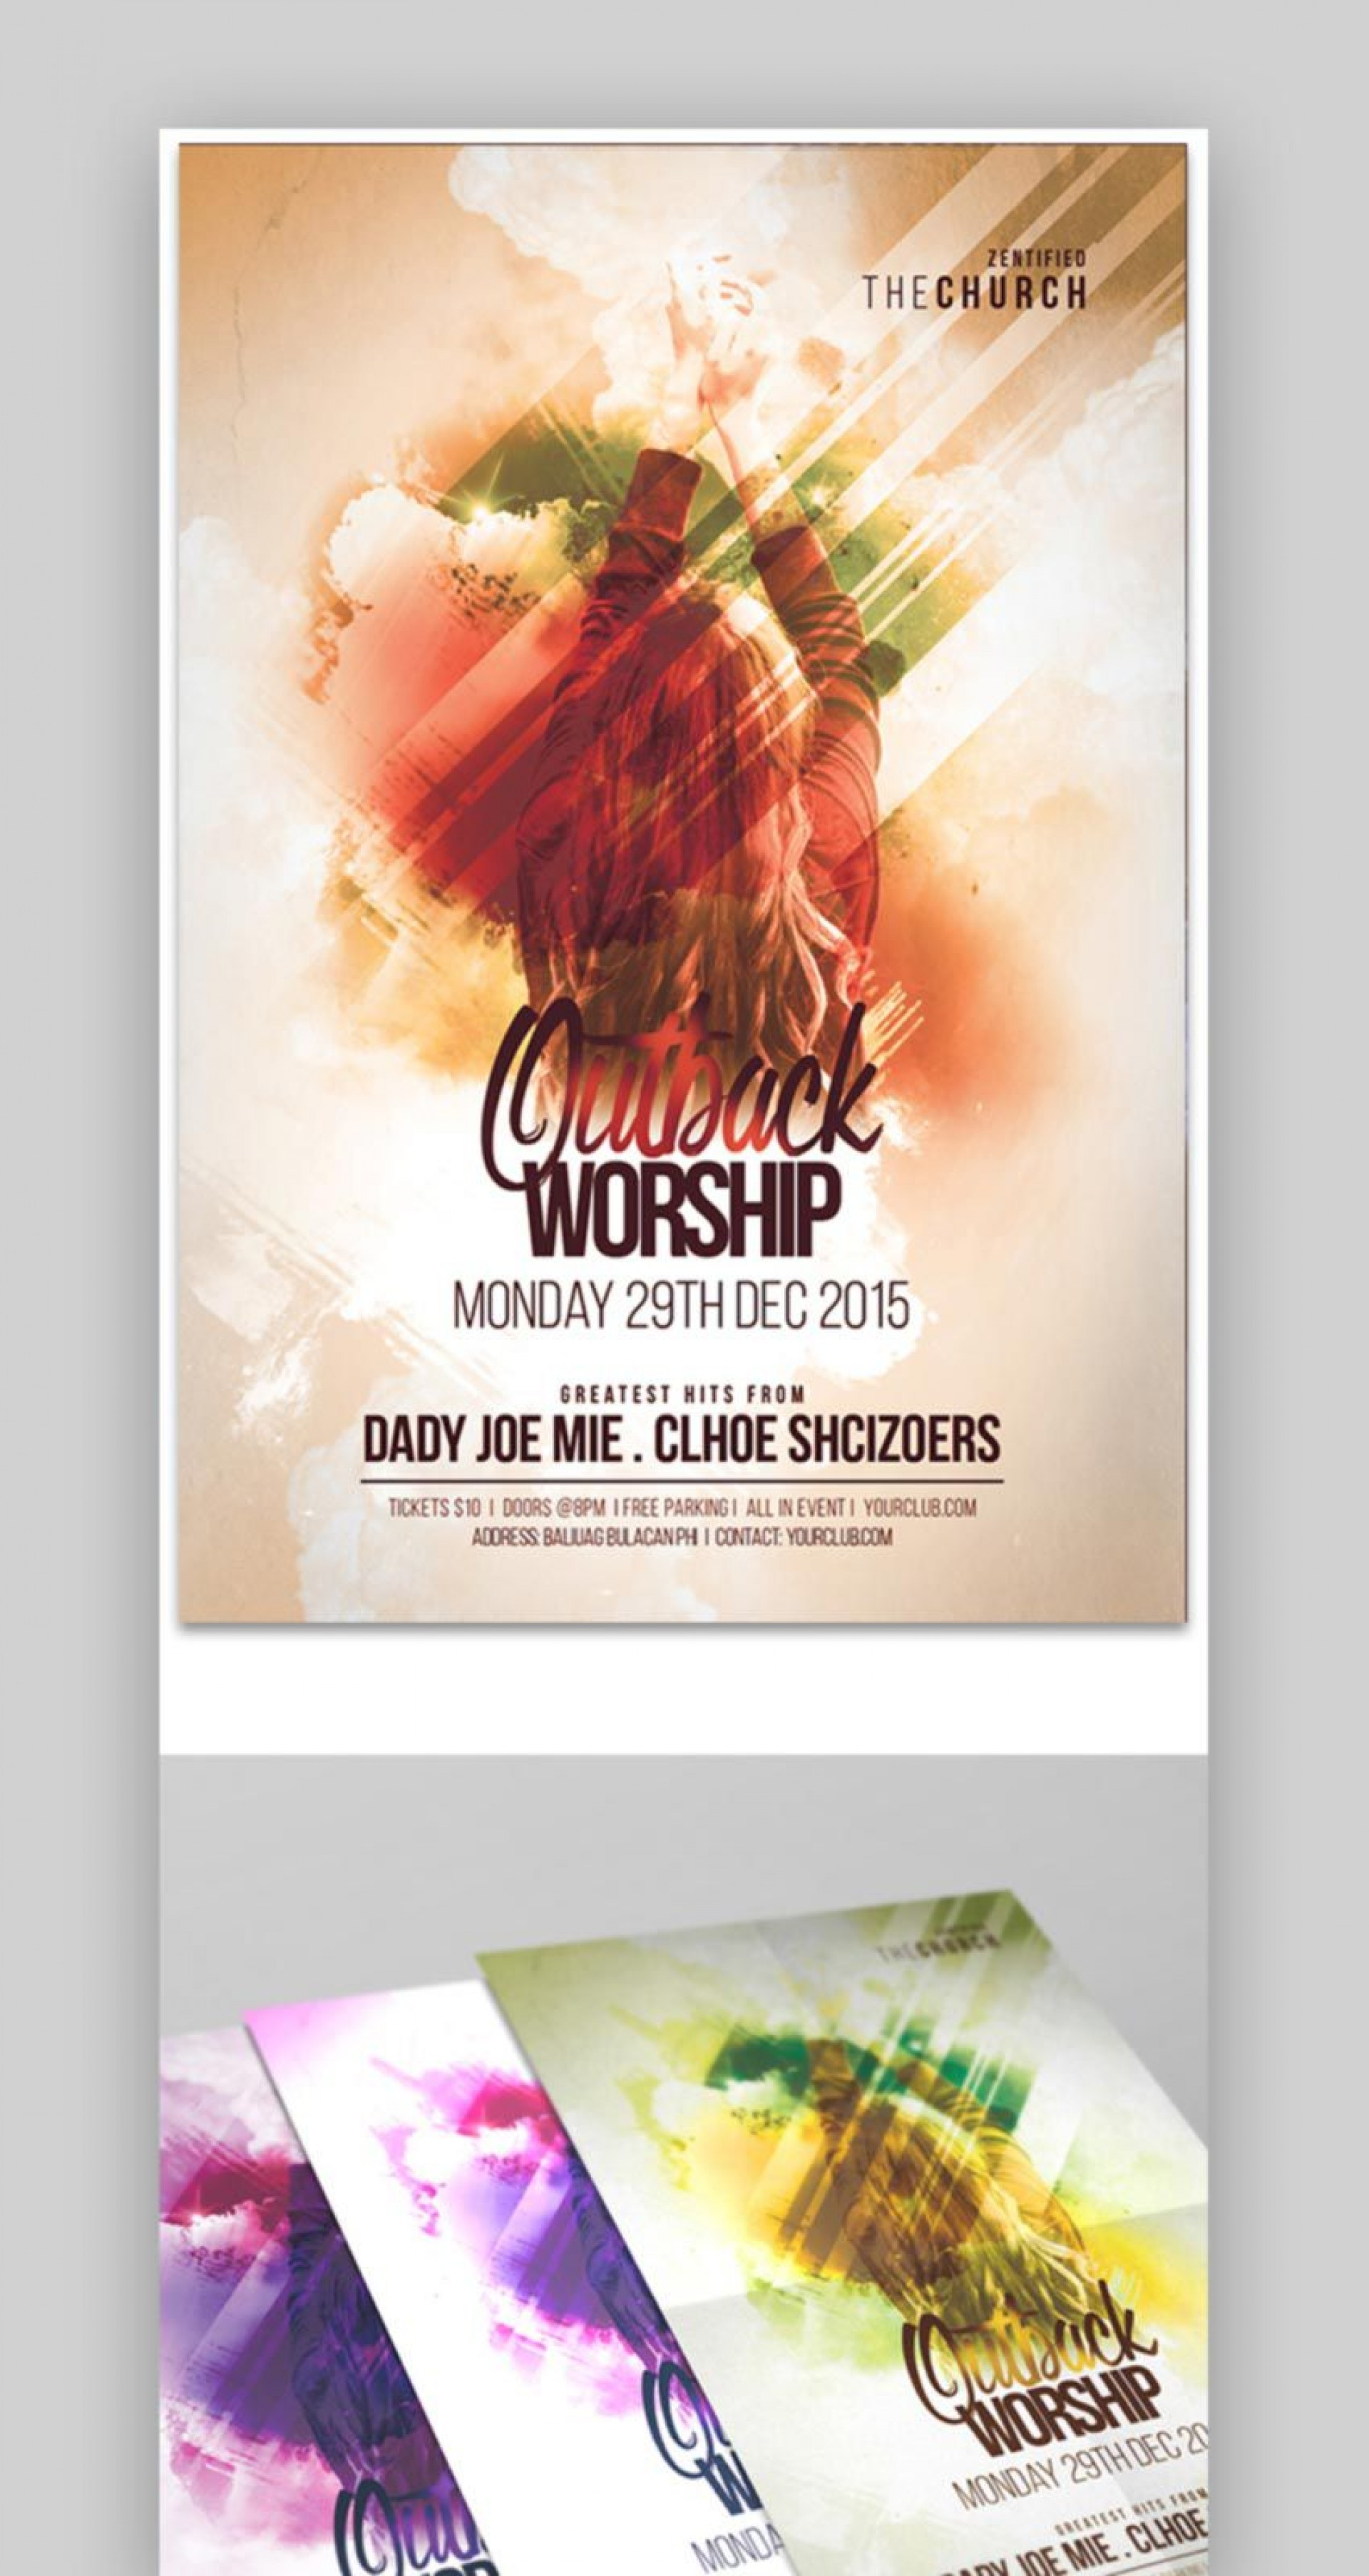 009 Surprising Church Flyer Template Free Download Highest Quality  Event Psd1920